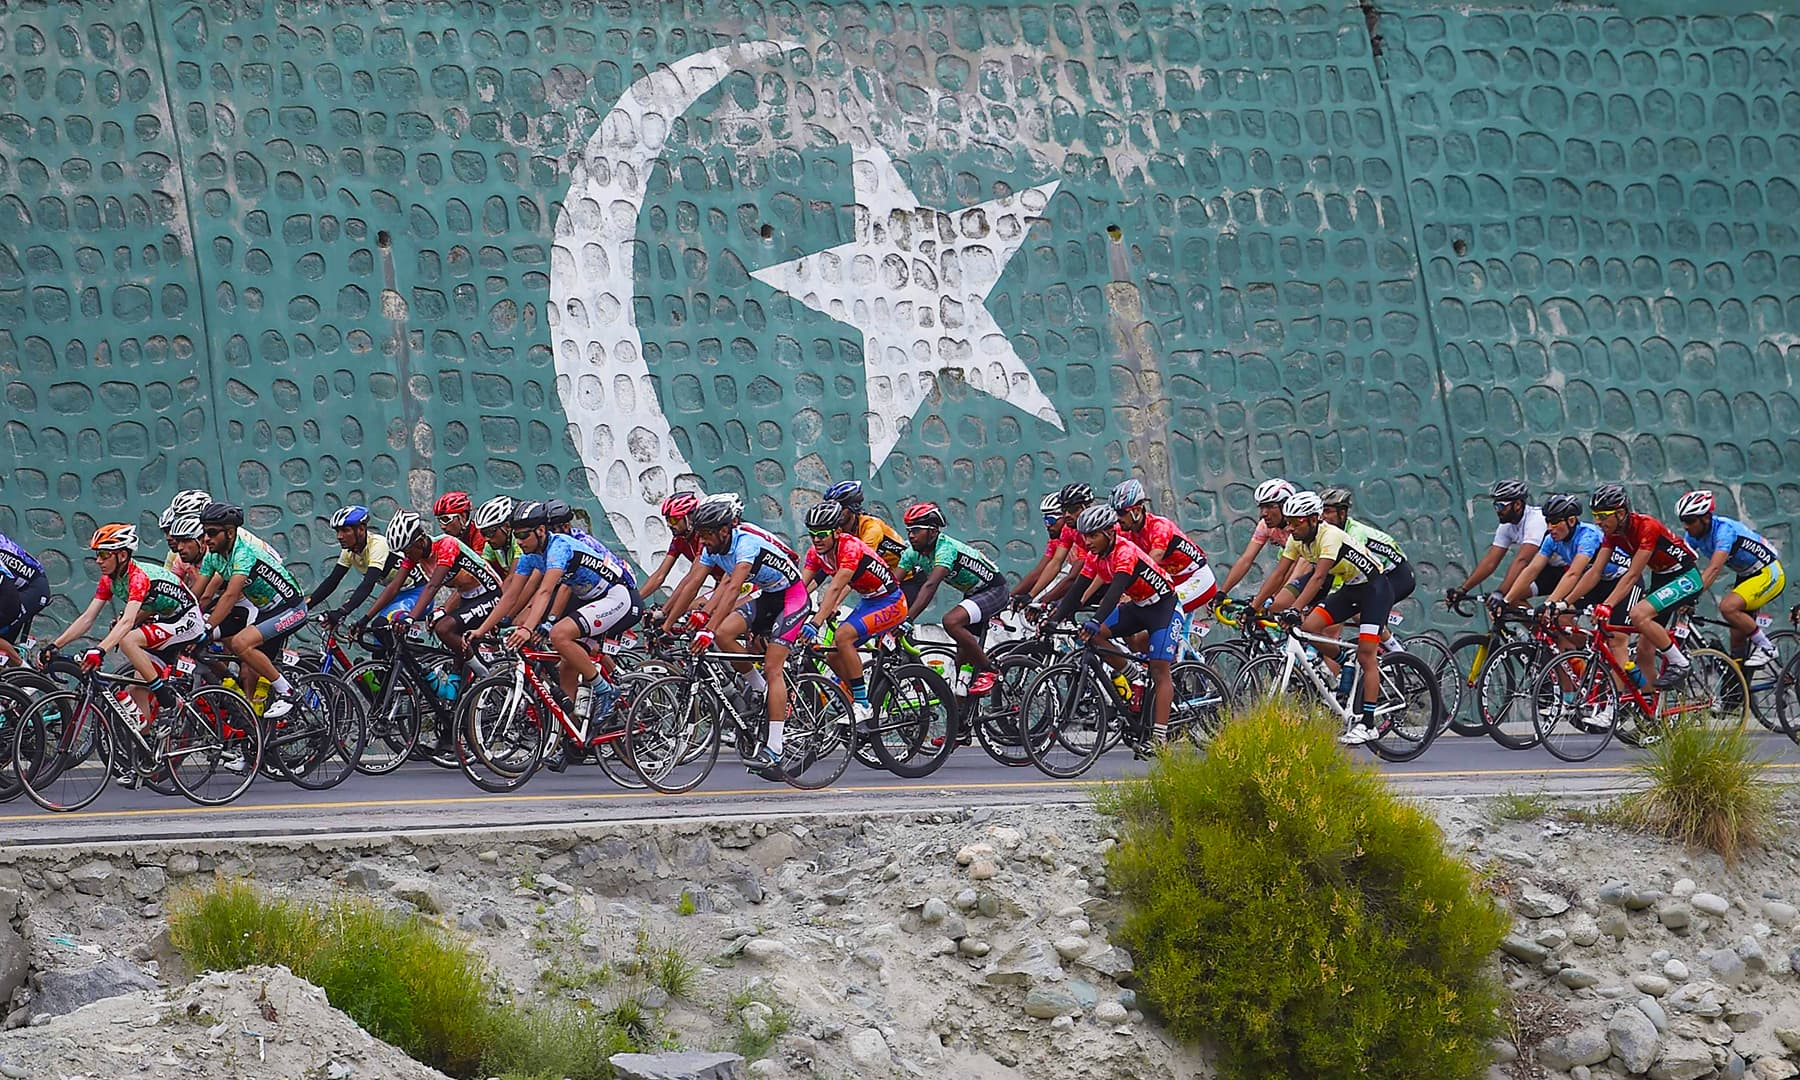 The cycle race starts at 4,800 hundred feet above sea level and ends at 1,600 feet. — AFP